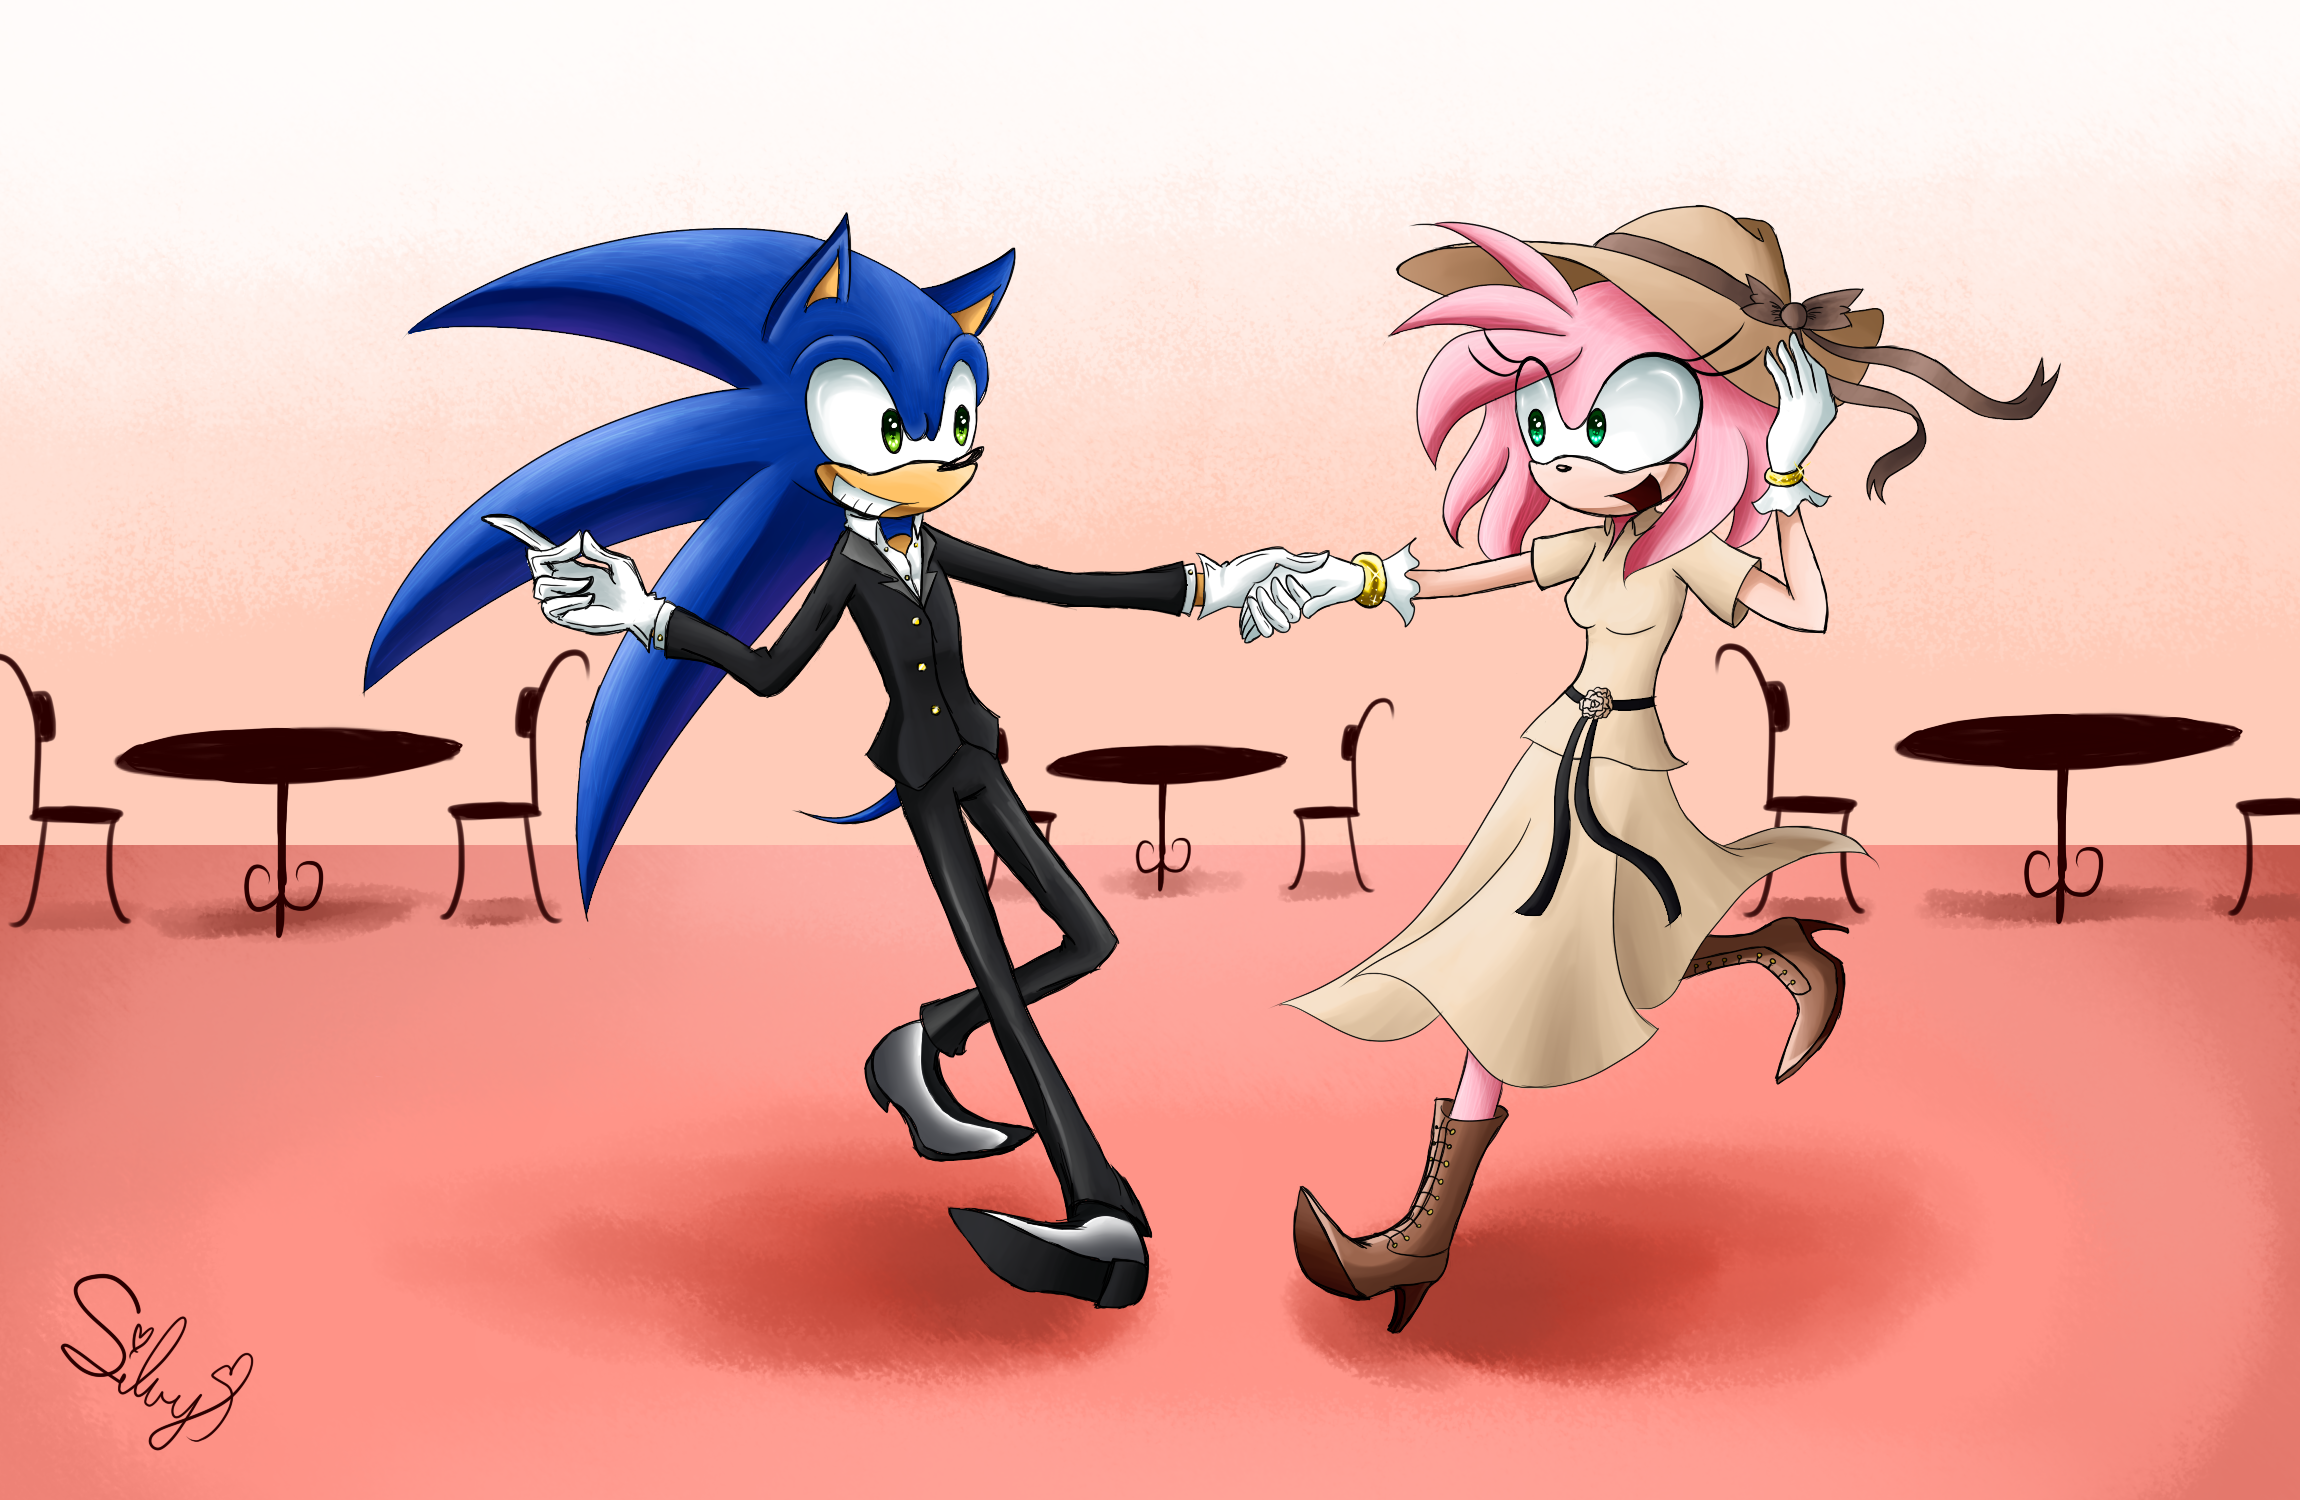 Sonamy - 40's dance + SpeedPaint by SweetSilvy